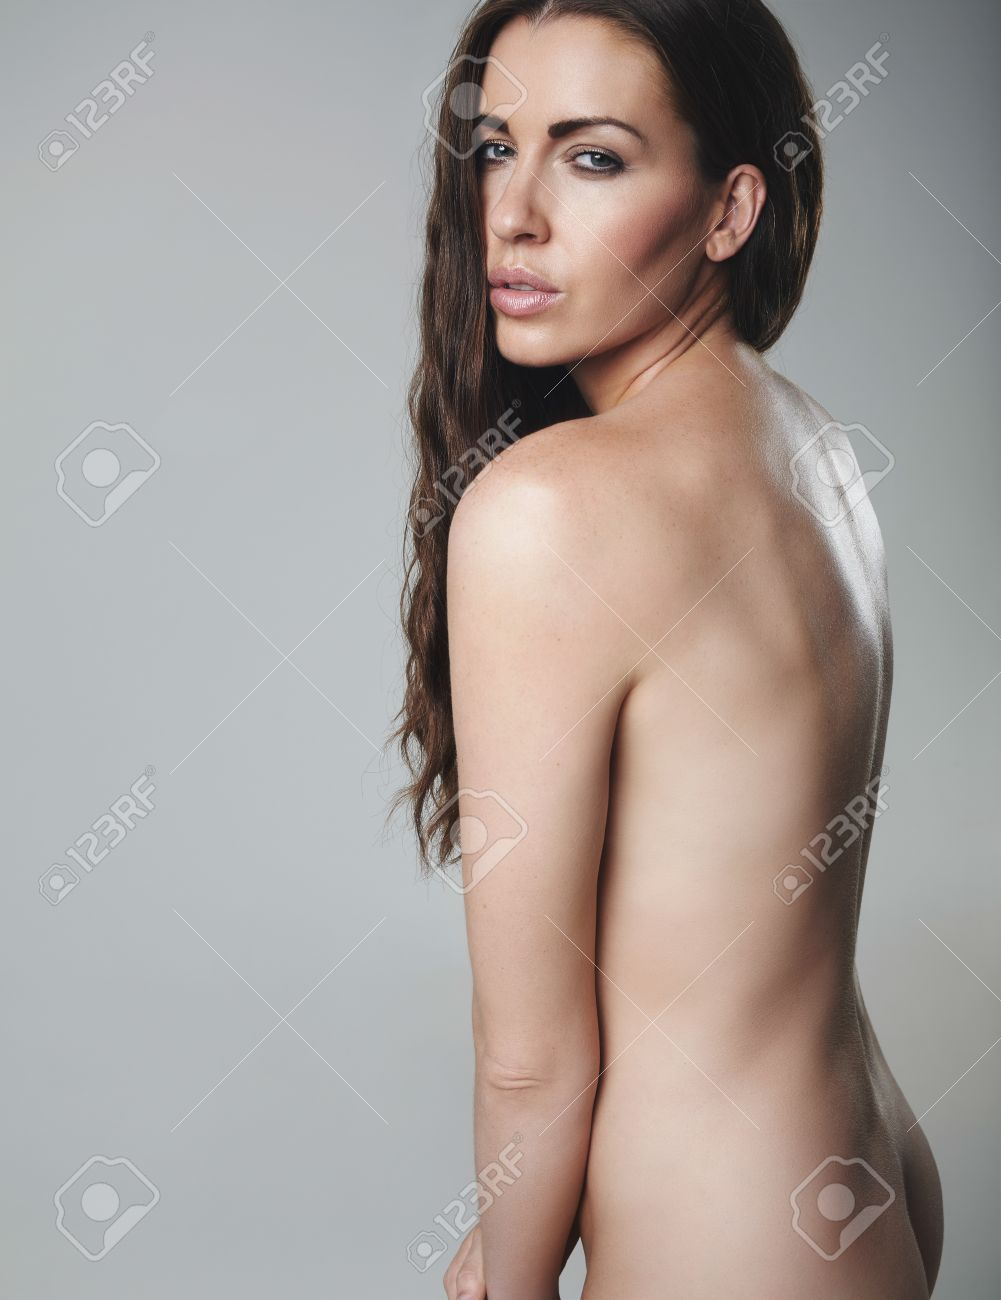 young nude model Sexy young brunette posing naked. Nude female model on grey background.  Stock Photo -